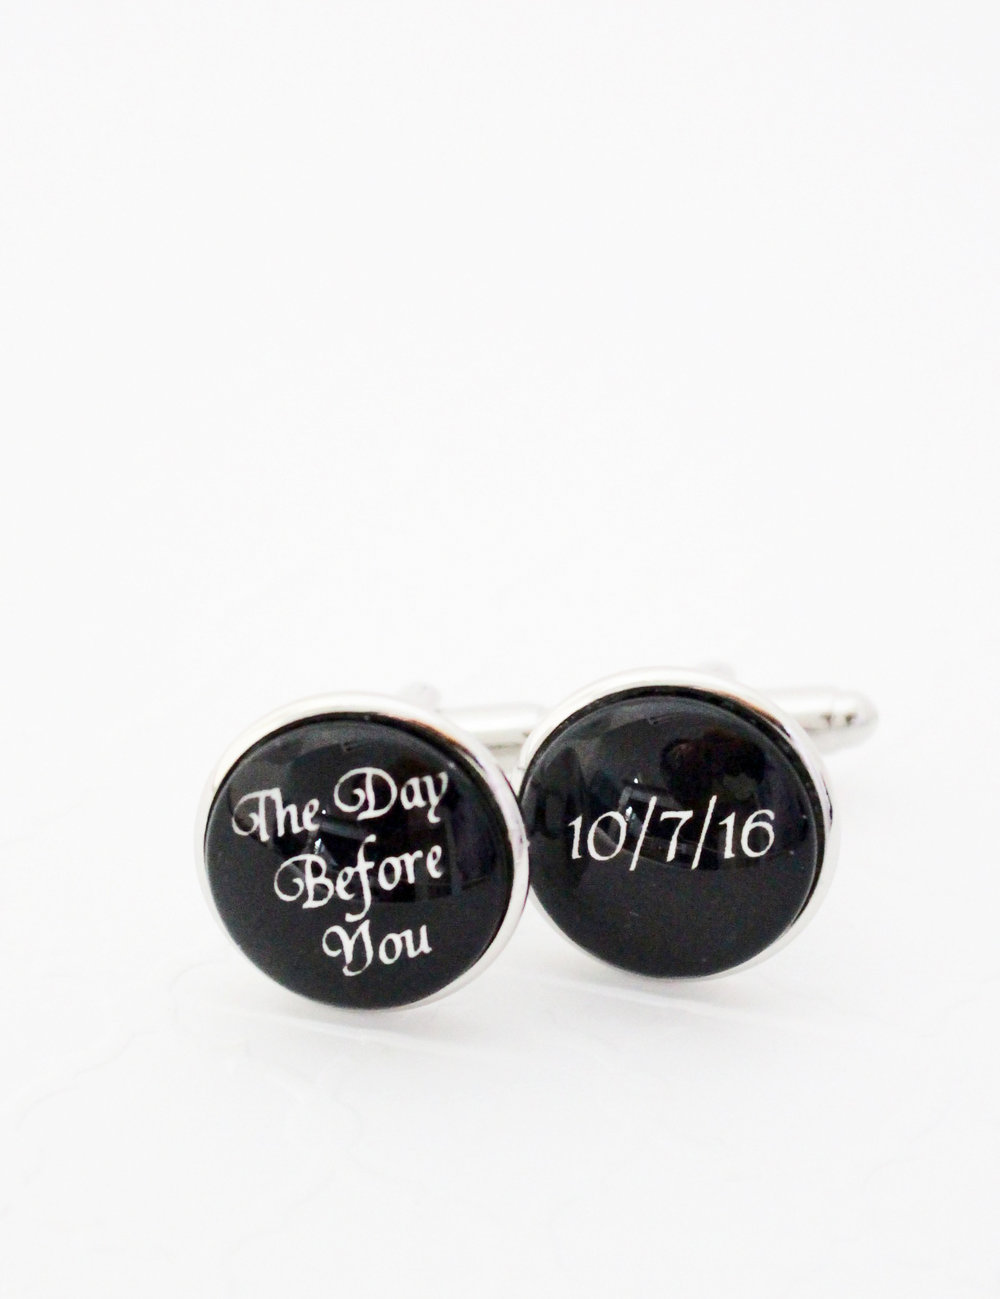 Wedding Song Cufflinks Gift for Groom.jpg